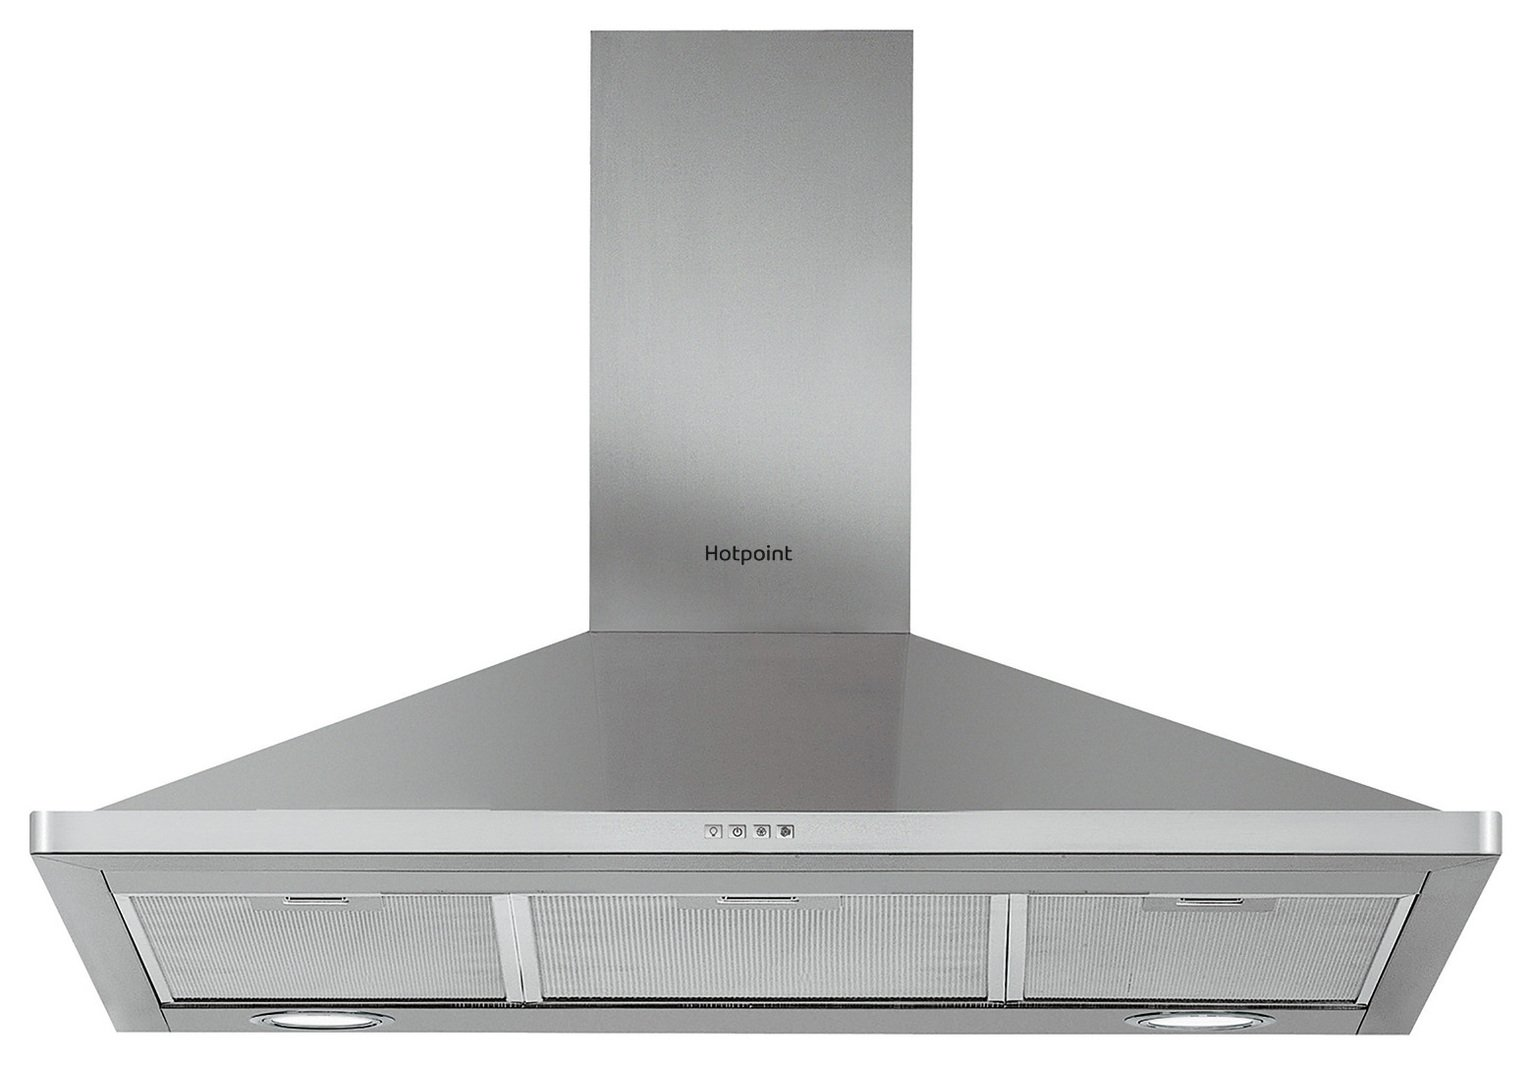 Hotpoint PHPN9.5FLMX 90cm Cooker Hood - Stanless Steel from Hotpoint